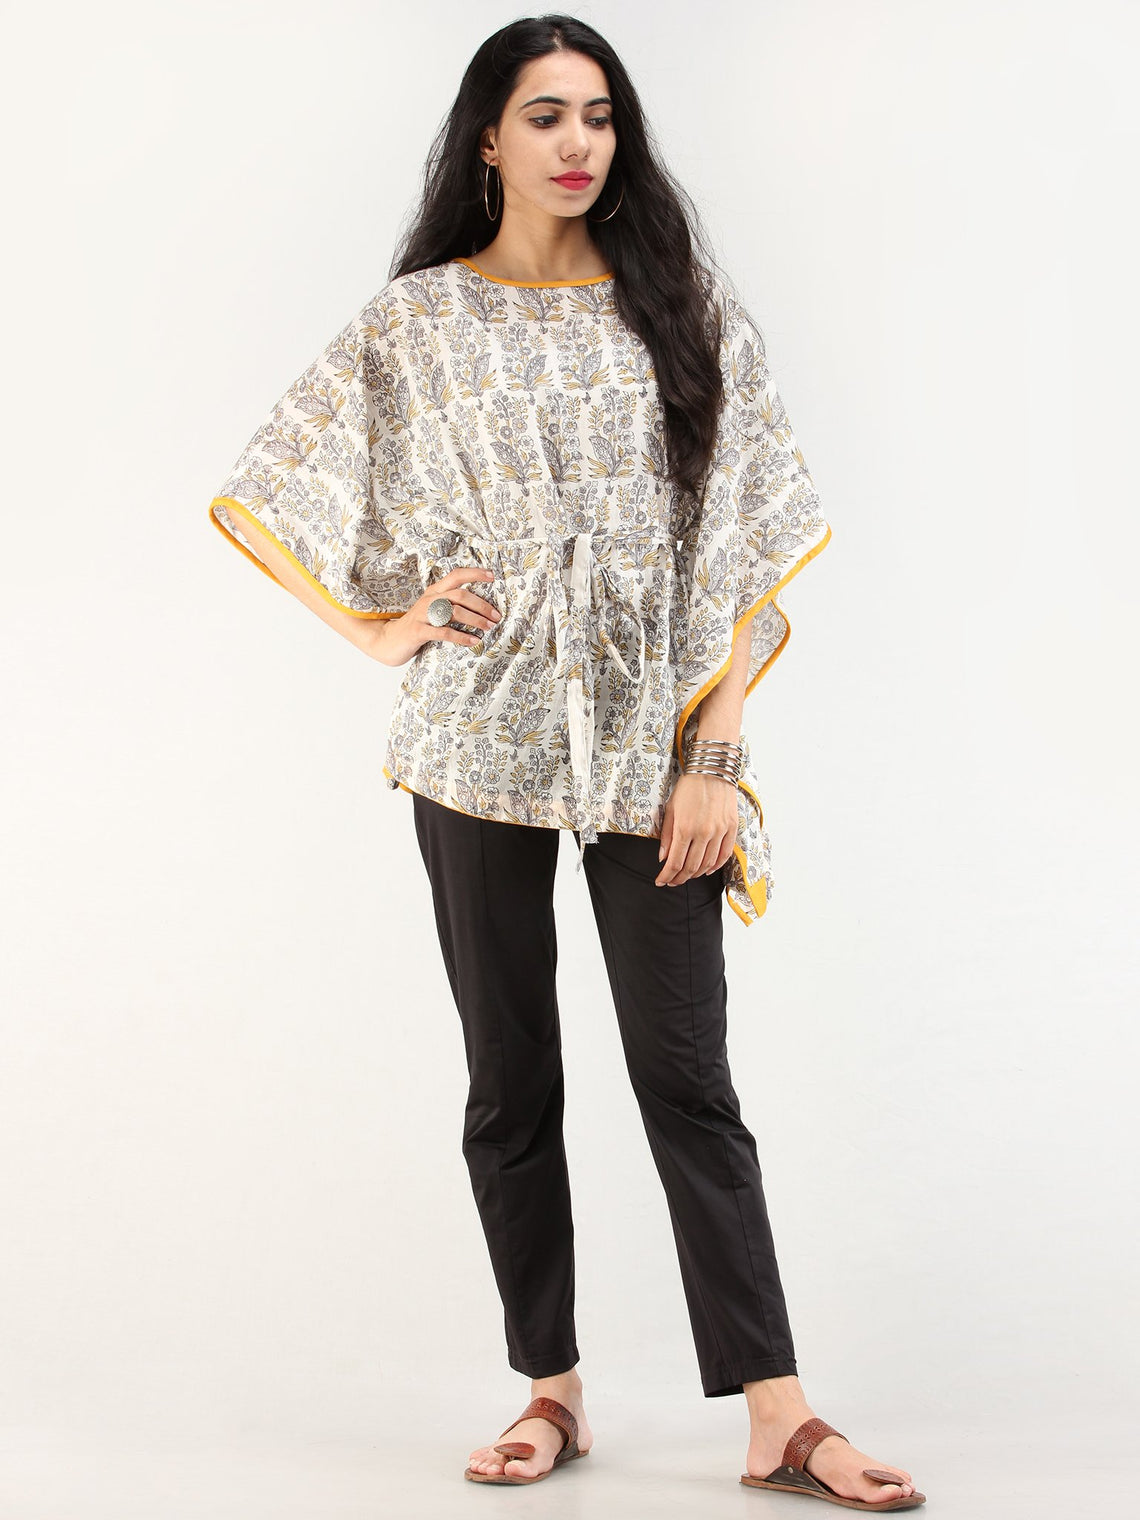 Rangrez Ghazal - Kaftan Cotton Top - T72F2191